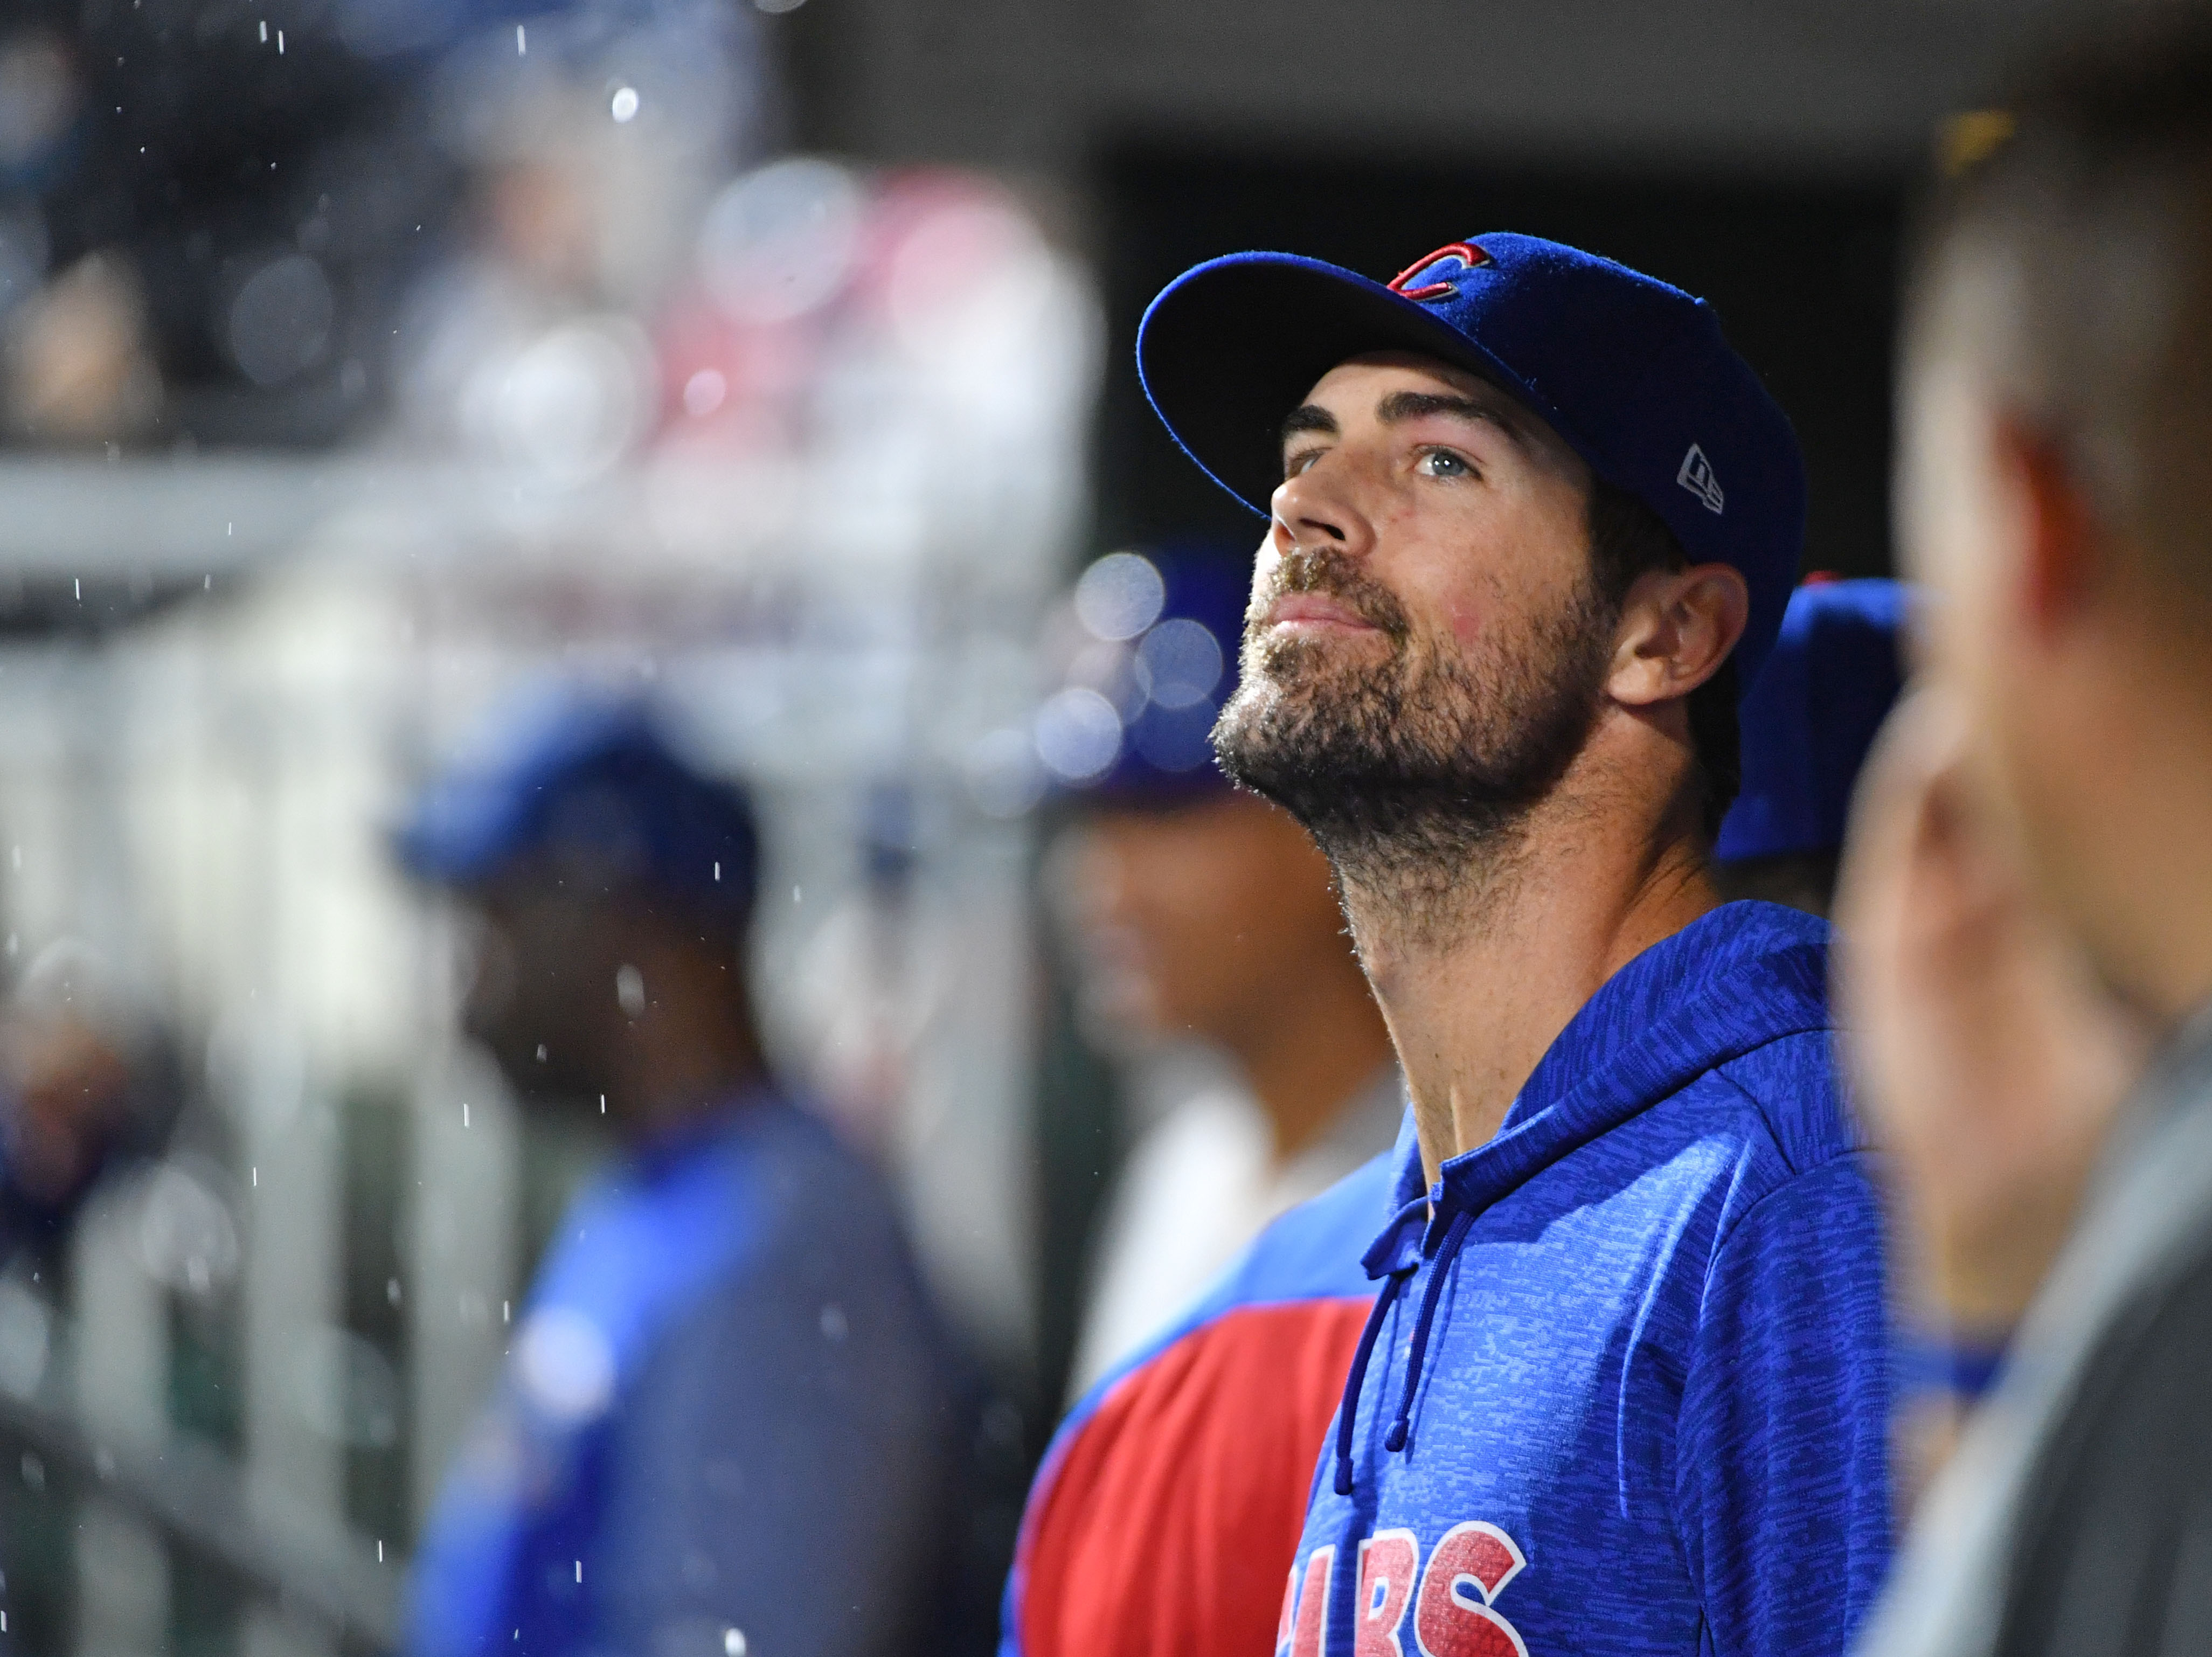 Cole Hamels takes a shot at Brewers fans over perceived rivalry